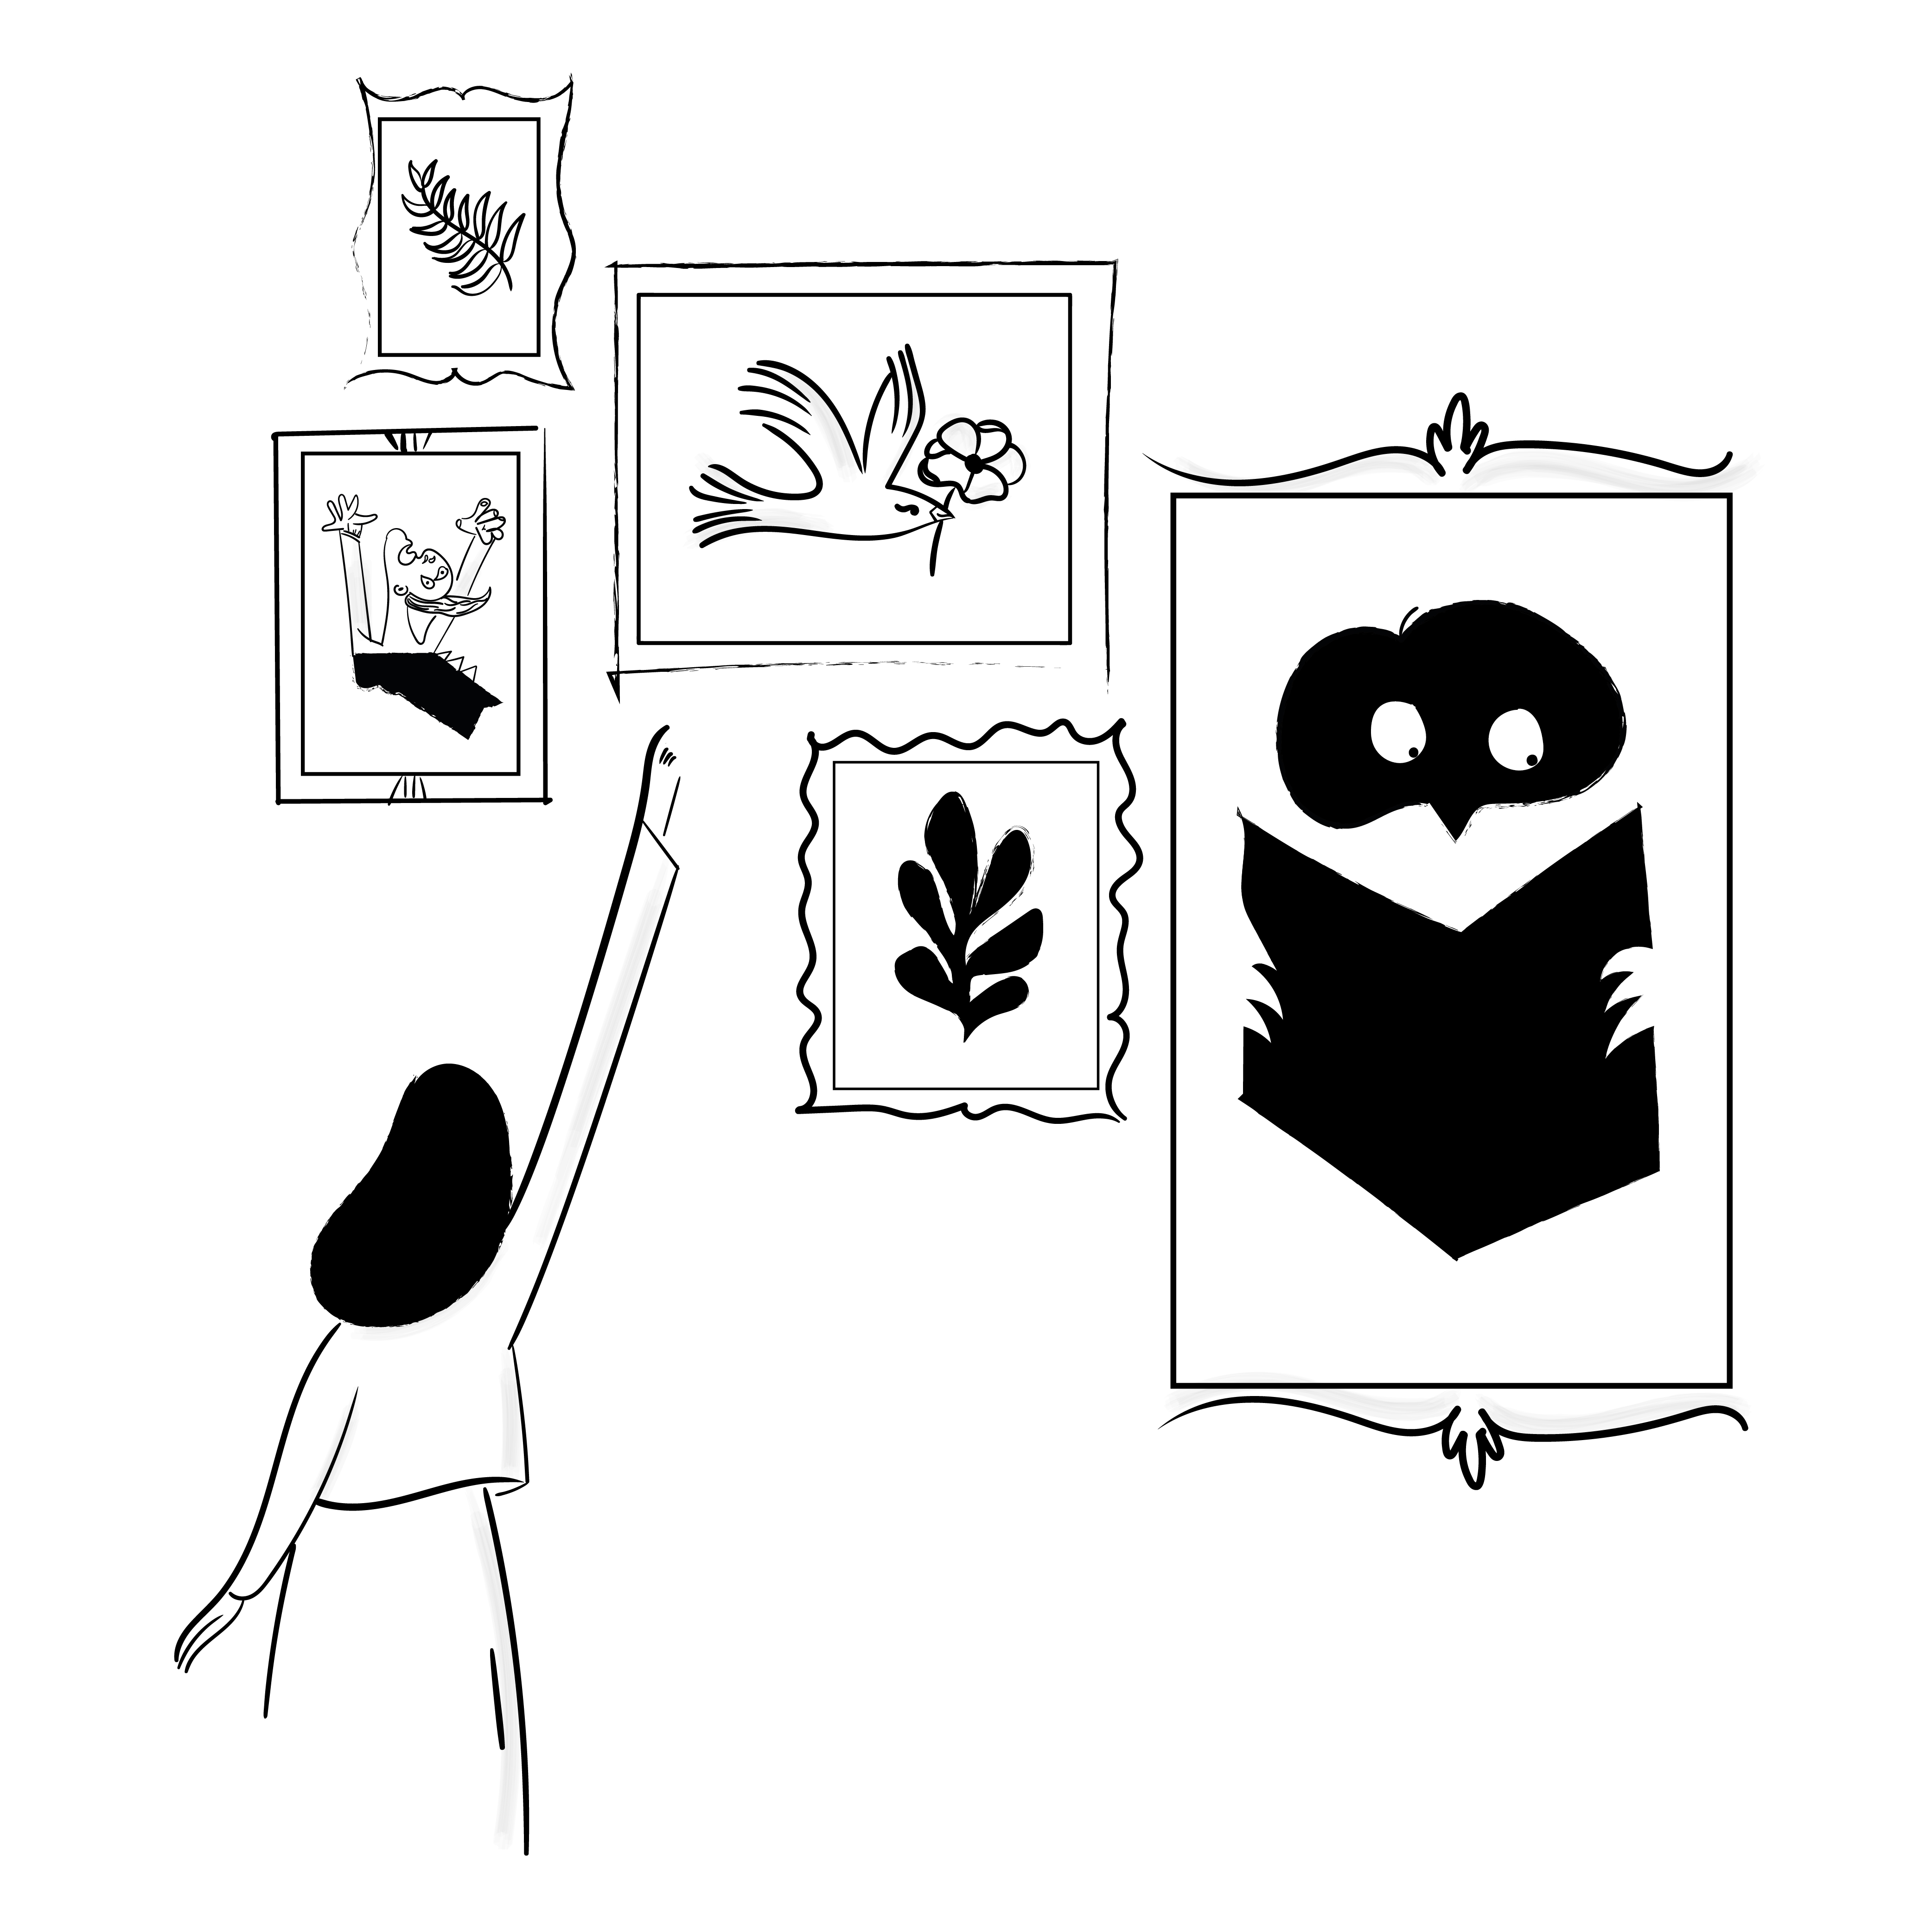 A person pointing to multiple picture frames on a wall containing a Picasso-esque person waving their arms like a maniac, coral, a messenger pigeon with a flower, an owl reading a book but not letting the absence of thumbs bother it when turning pages, and a leaf.